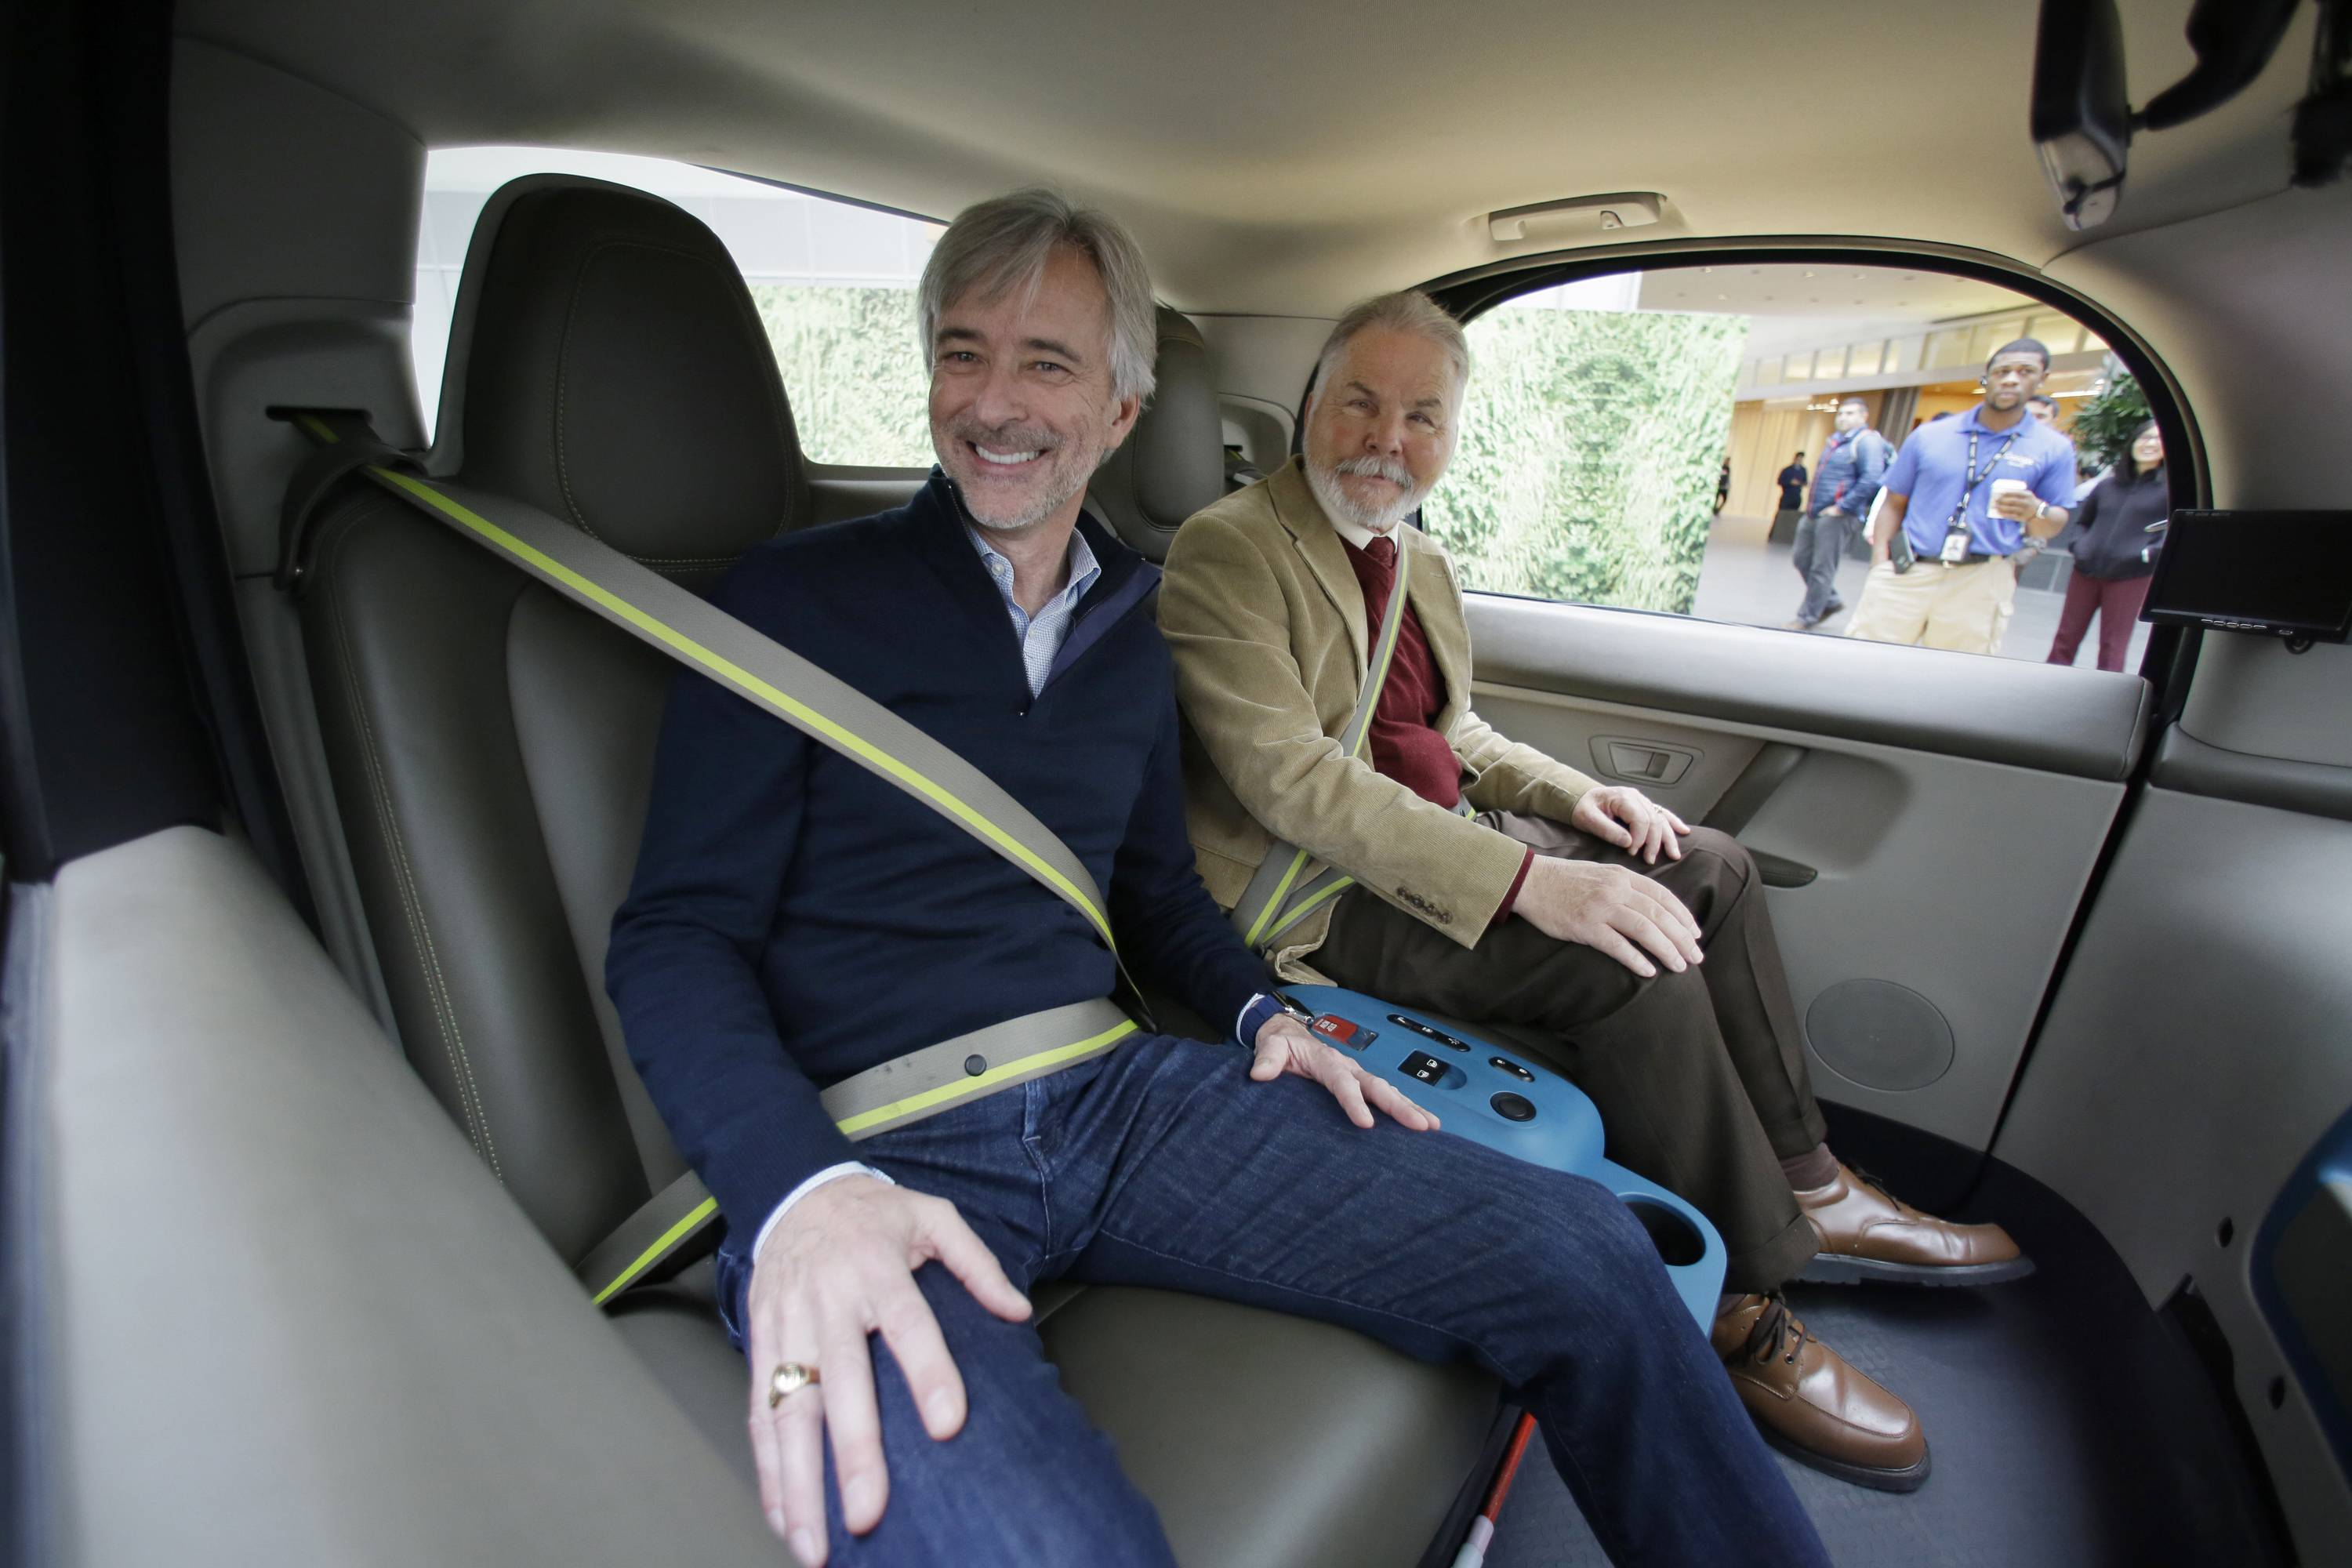 Waymo CEO John Krafcik, left, sits with Steve Mahan, who is blind, inside a driverless car during a Google event, Tuesday, Dec. 13, 2016, in San Francisco. In 2015, Mahan became the first member of the public to ride in Google's self-driving prototype, alone and on public roads.